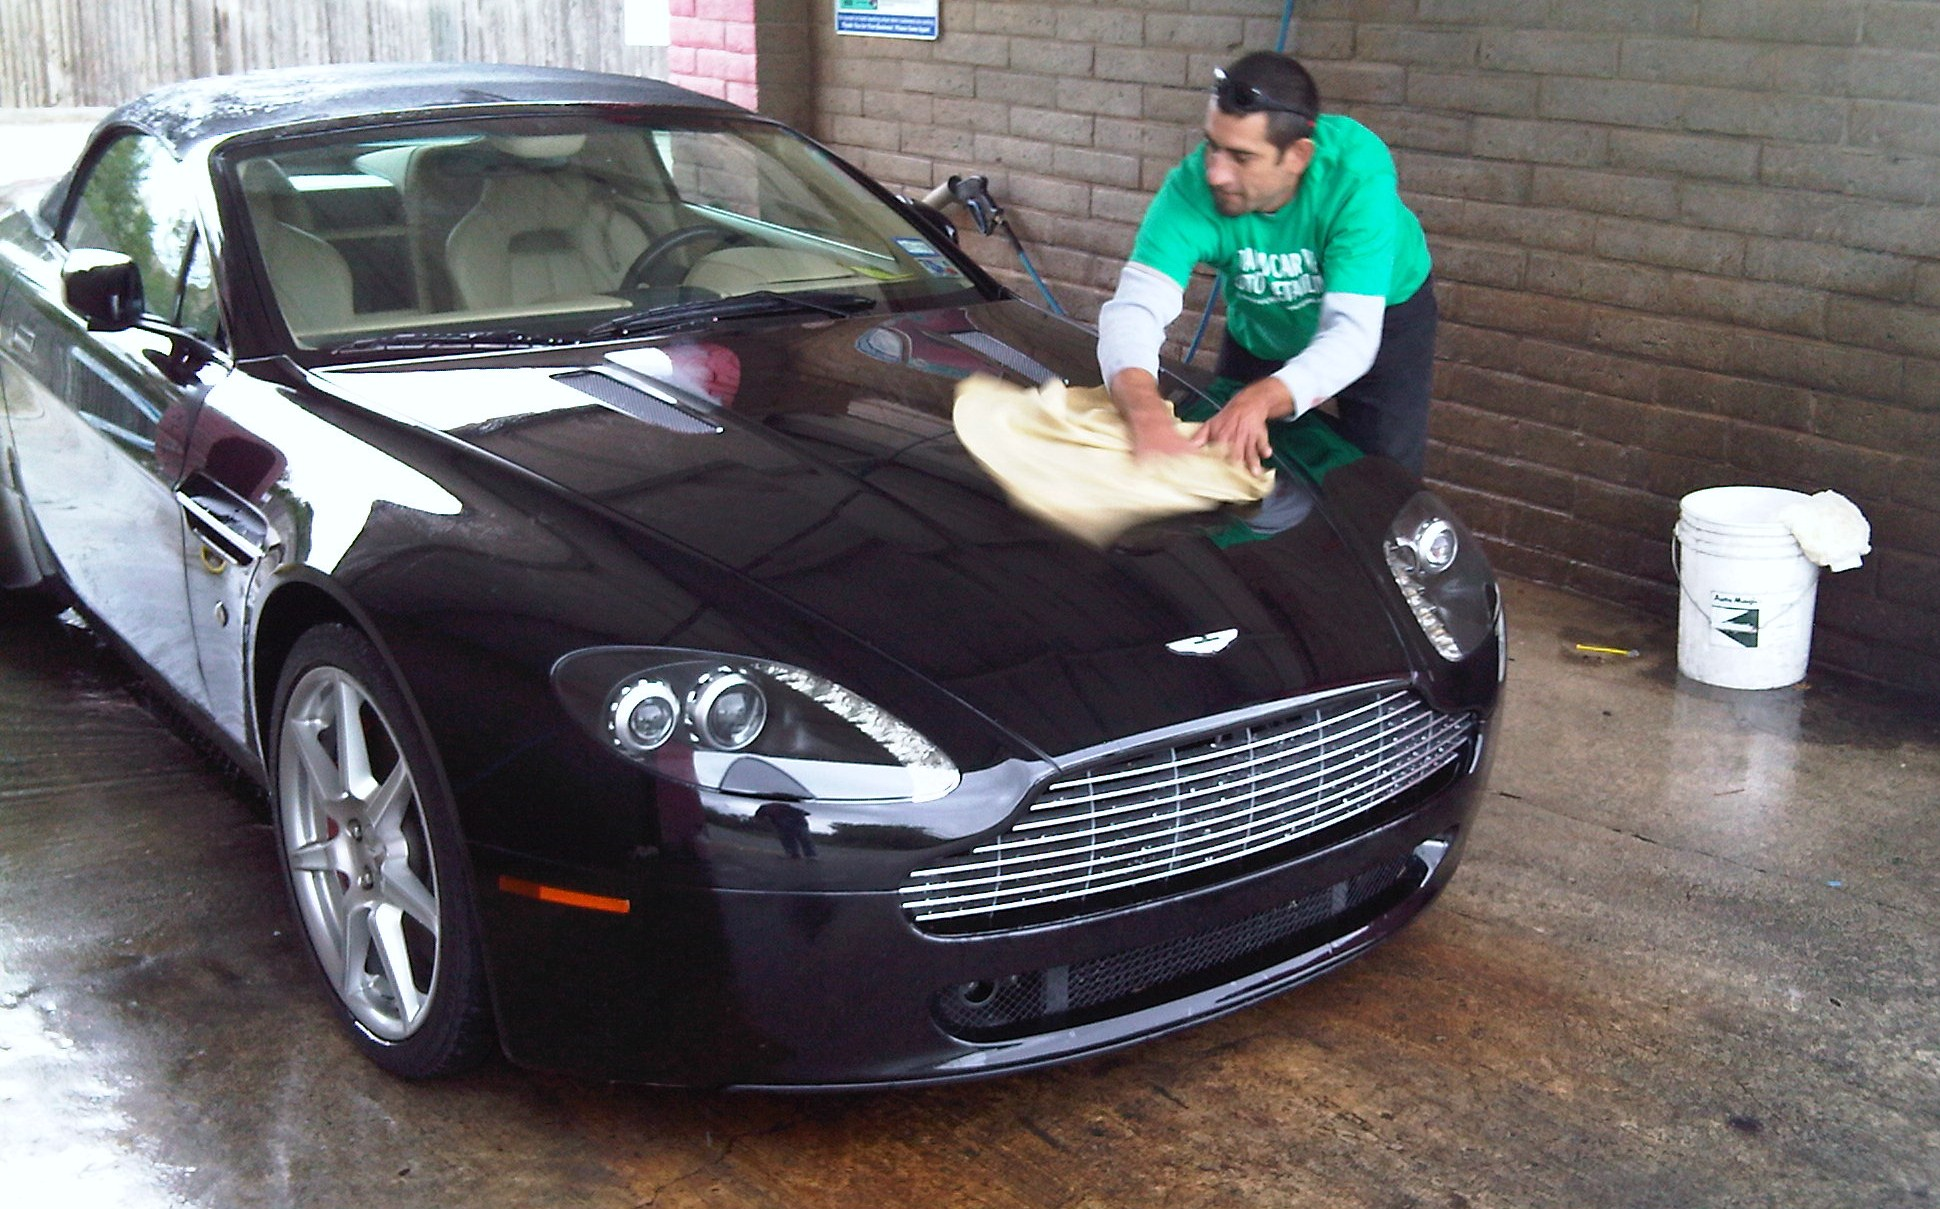 Full service hand wash the hand car wash and auto detailing for Clean car pictures